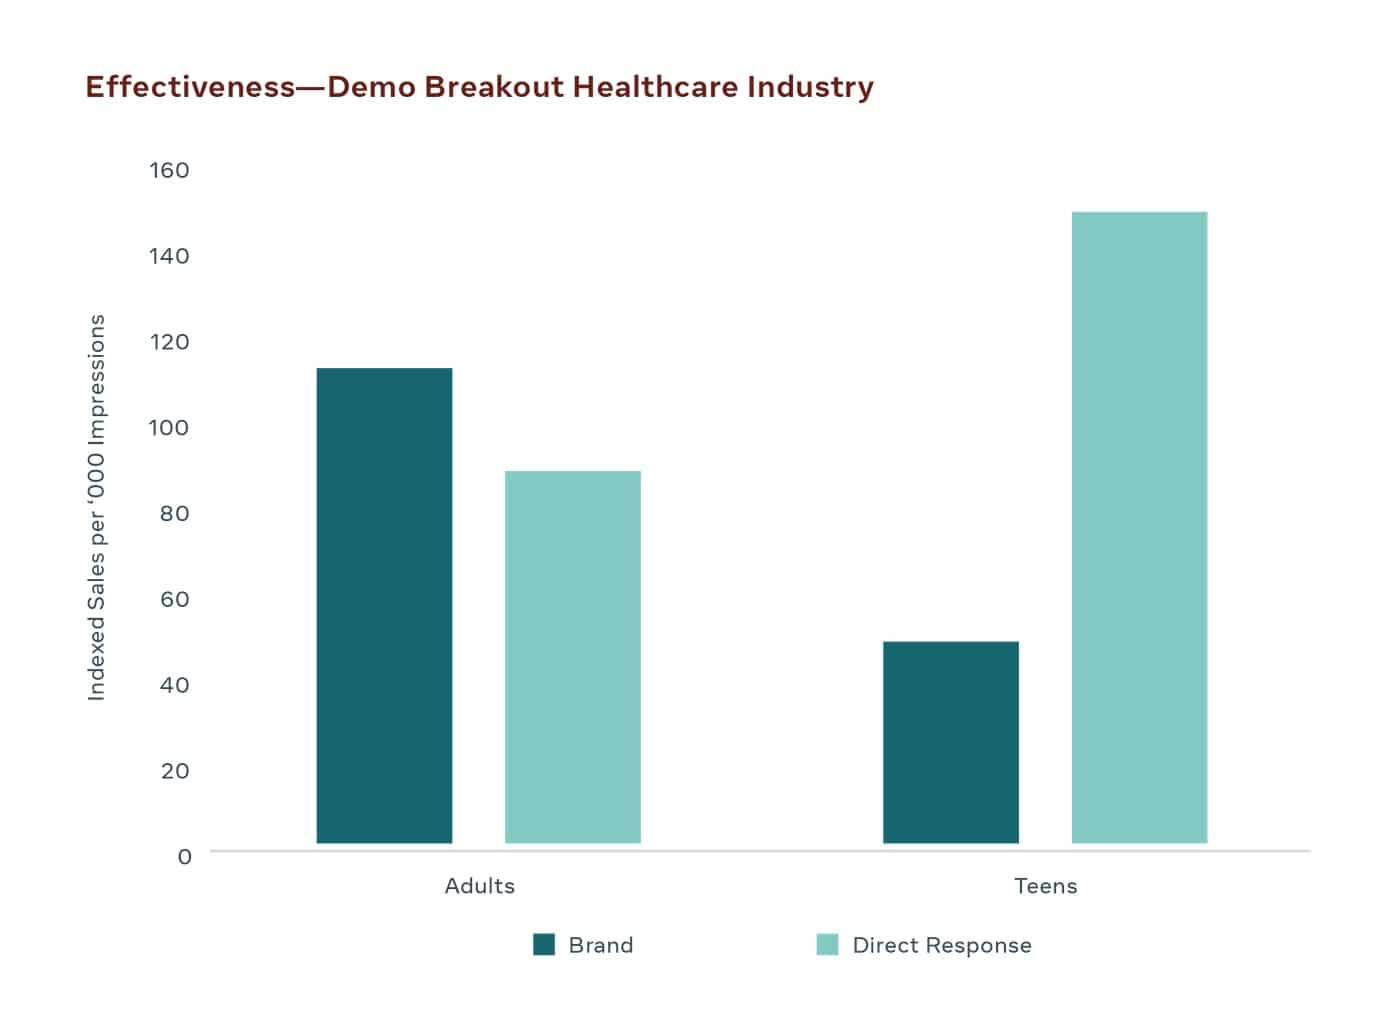 graph of brand messaging in health care industry by sales